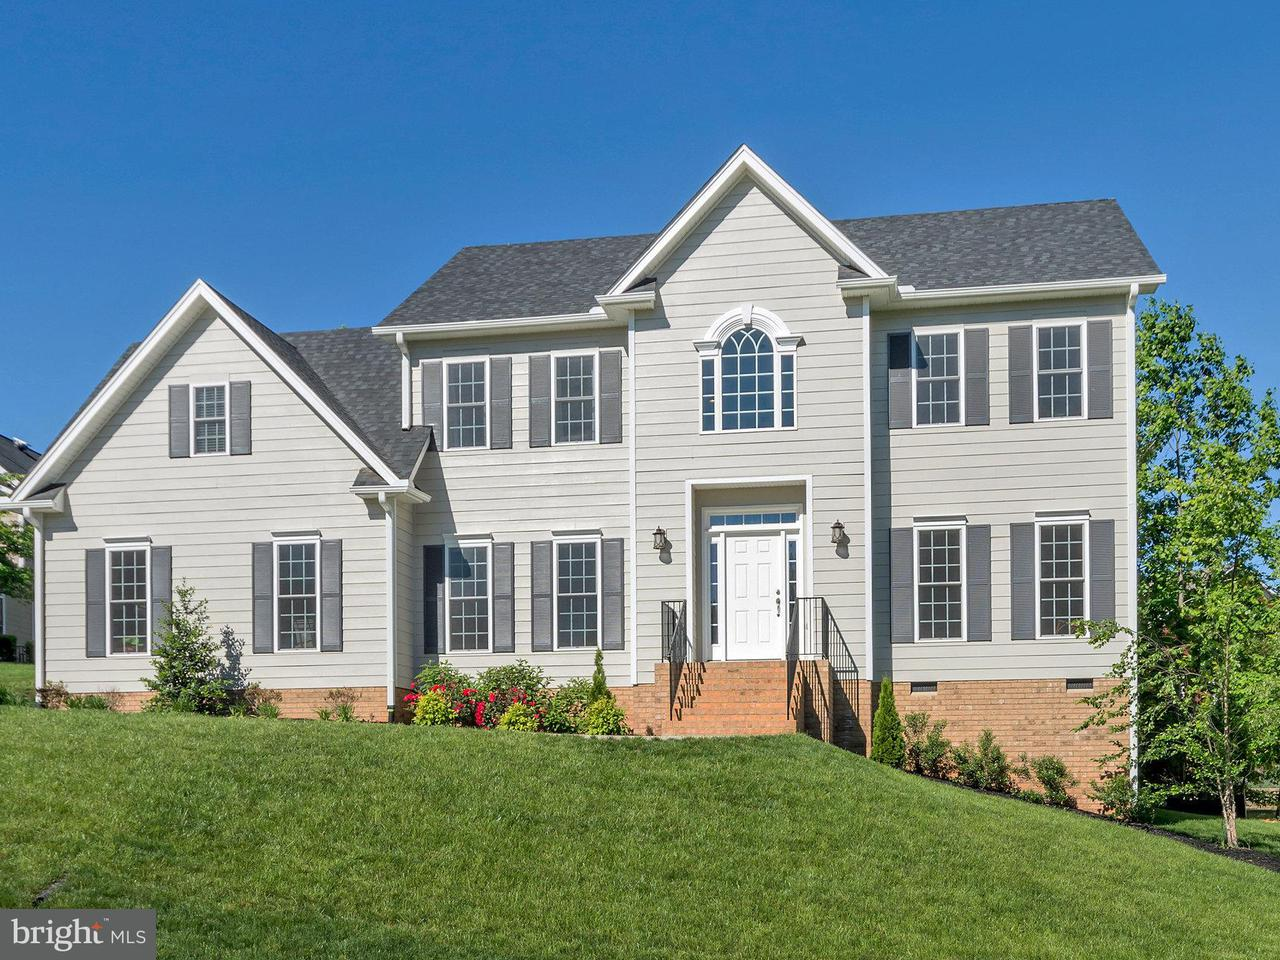 Single Family Home for Sale at LOT 29 PINE SHADOW Court LOT 29 PINE SHADOW Court Troy, Virginia 22974 United States